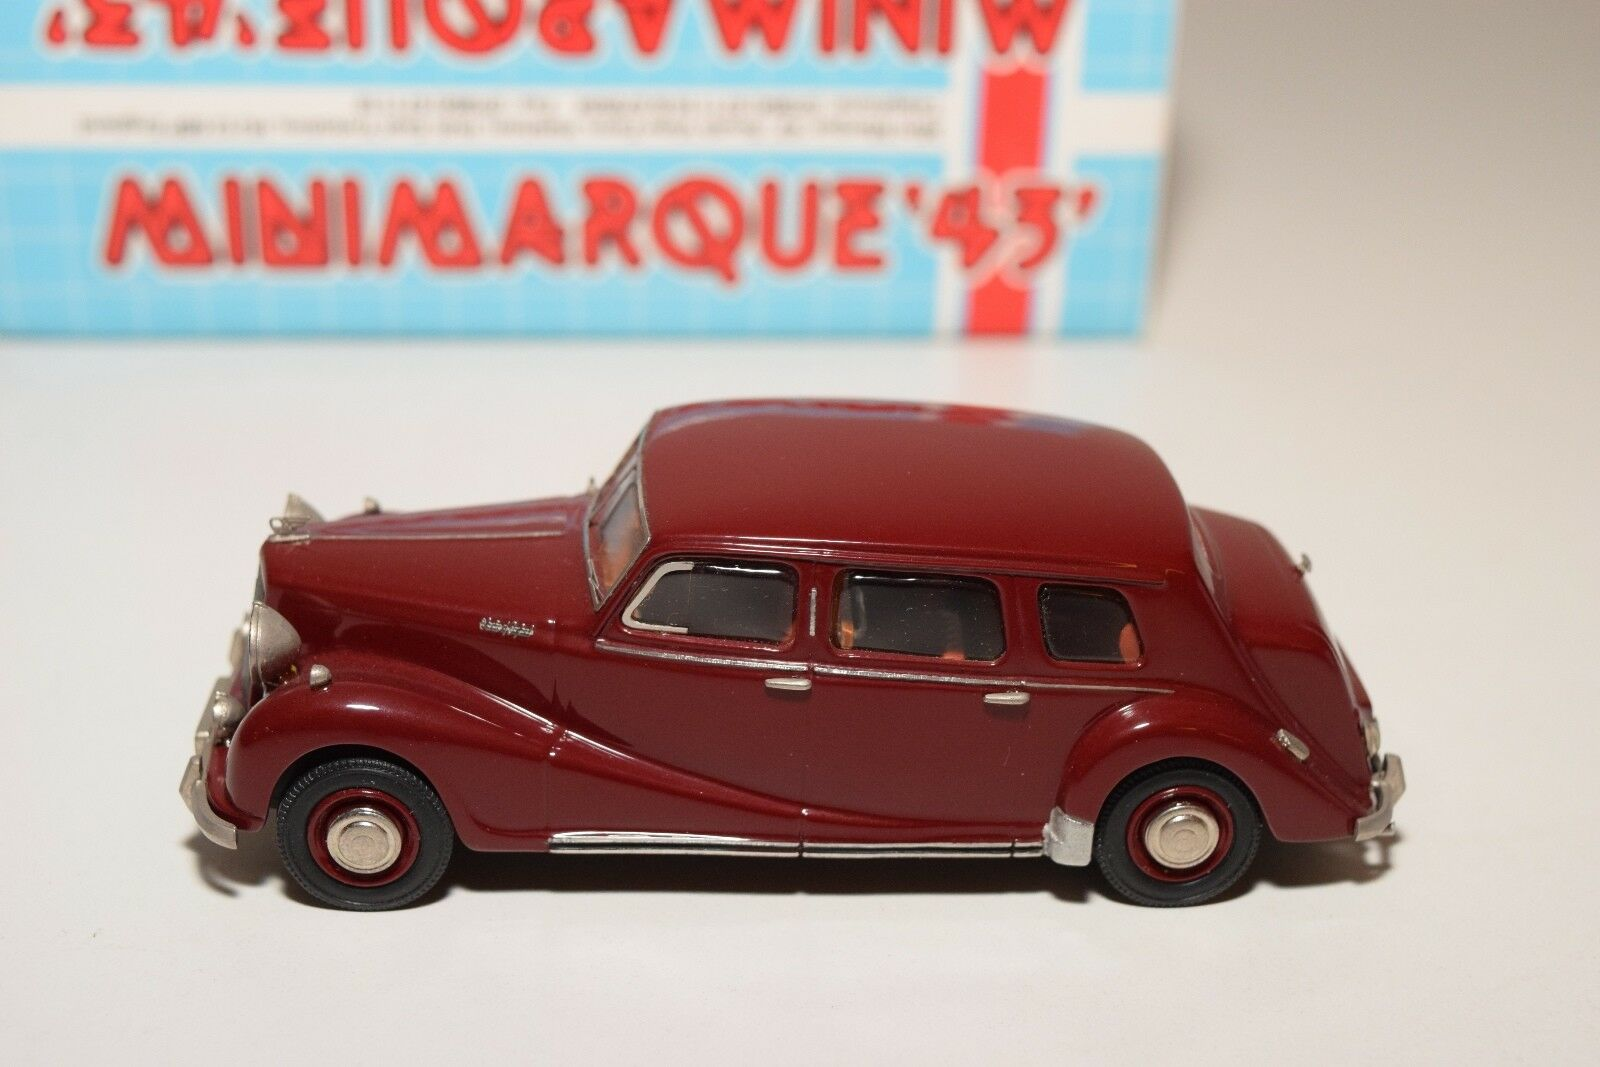 MINIMARQUE '43 '43 '43 AUSTIN A125 SHEERLINE LIMOUSINE MAROON MINT BOXED 739bcd